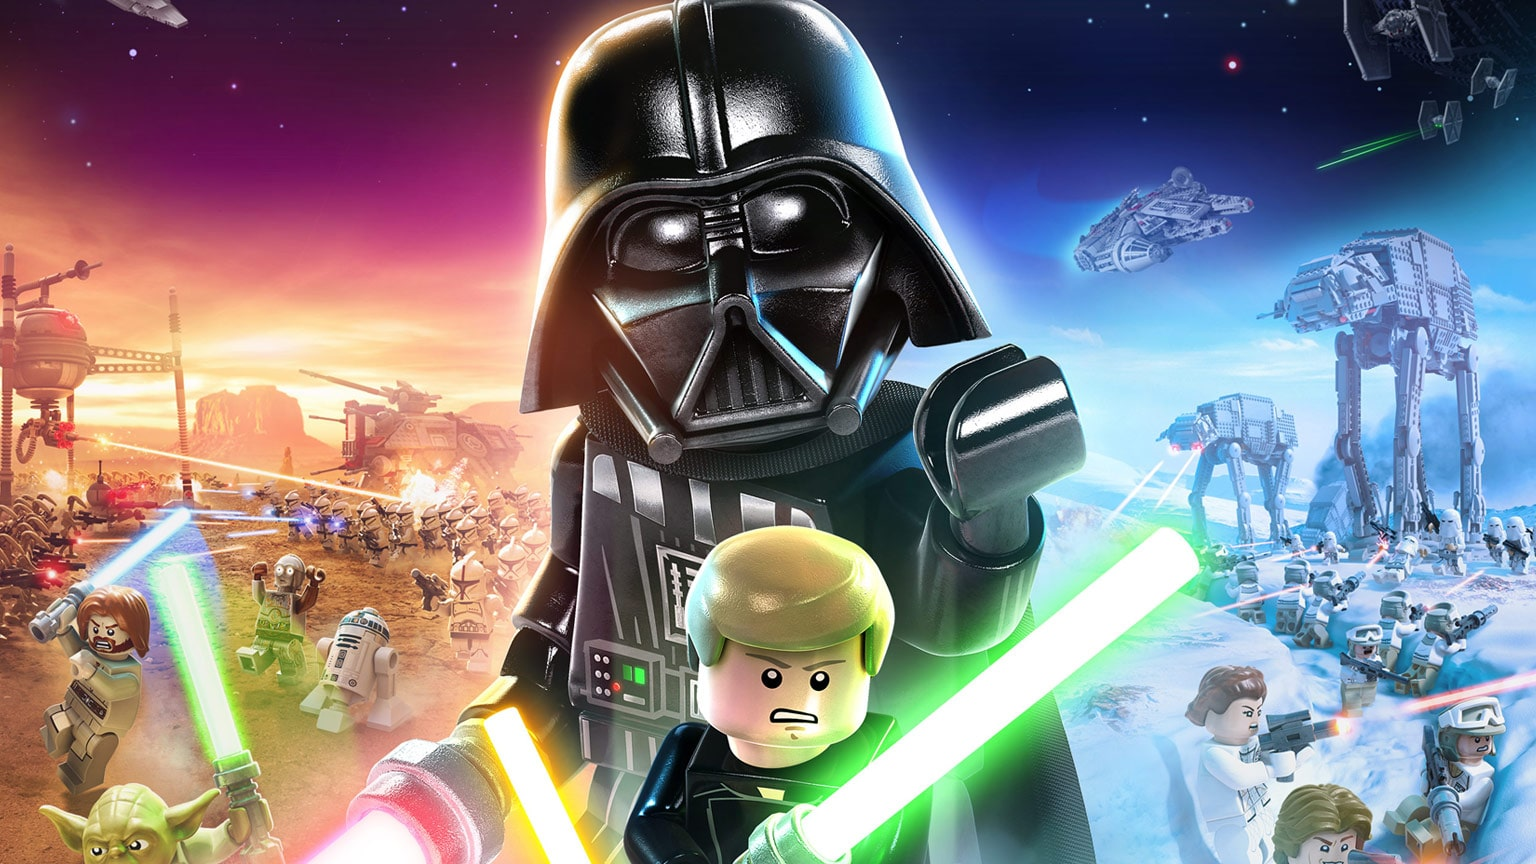 LEGO Star Wars The Skywalker Saga min